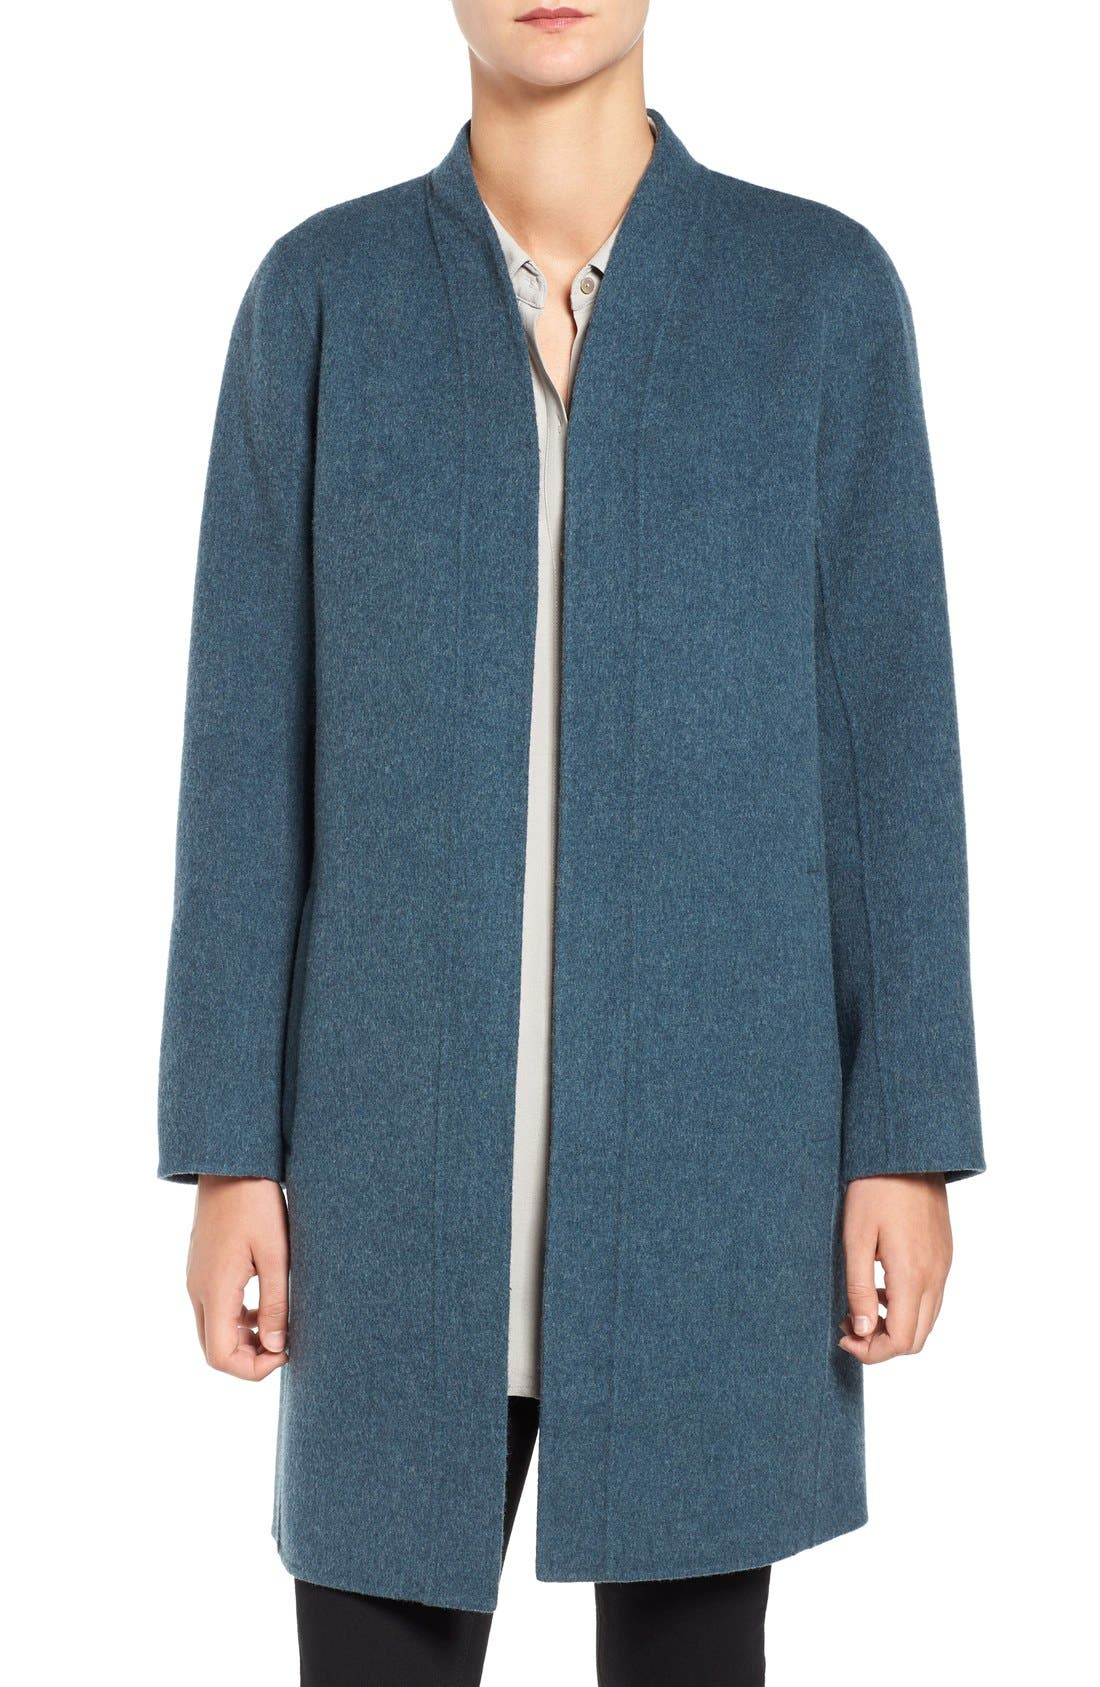 Alternate Image 1 Selected - Eileen Fisher Double Face Brushed Wool Blend Kimono Jacket